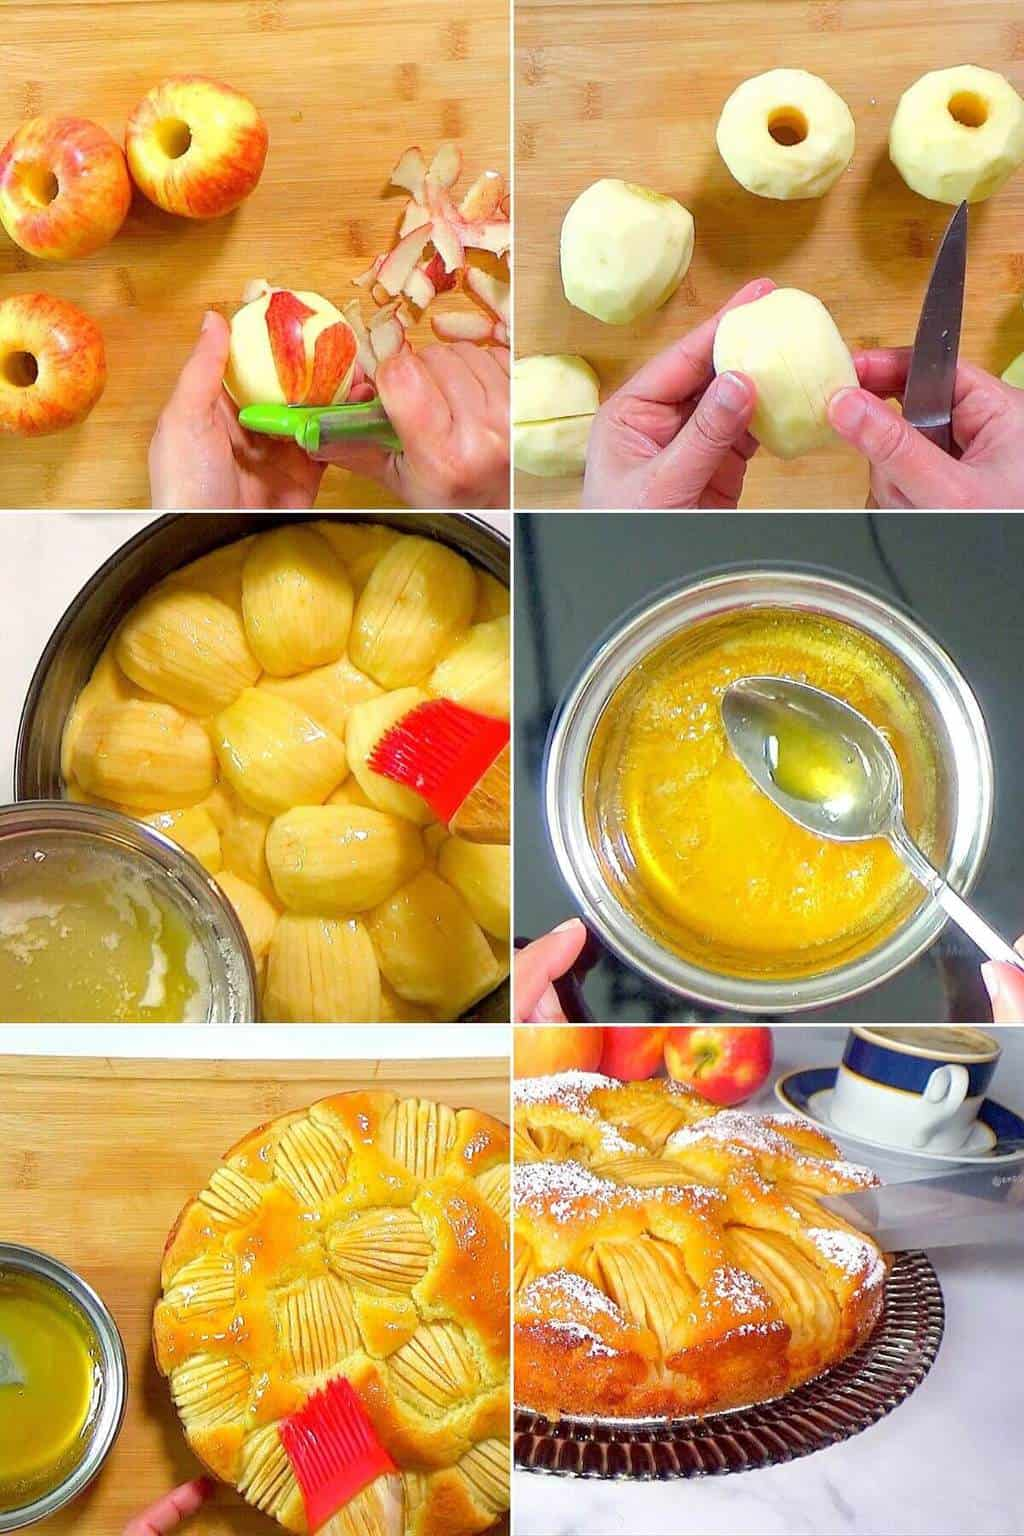 Step by step preparation of apfelkuchen.